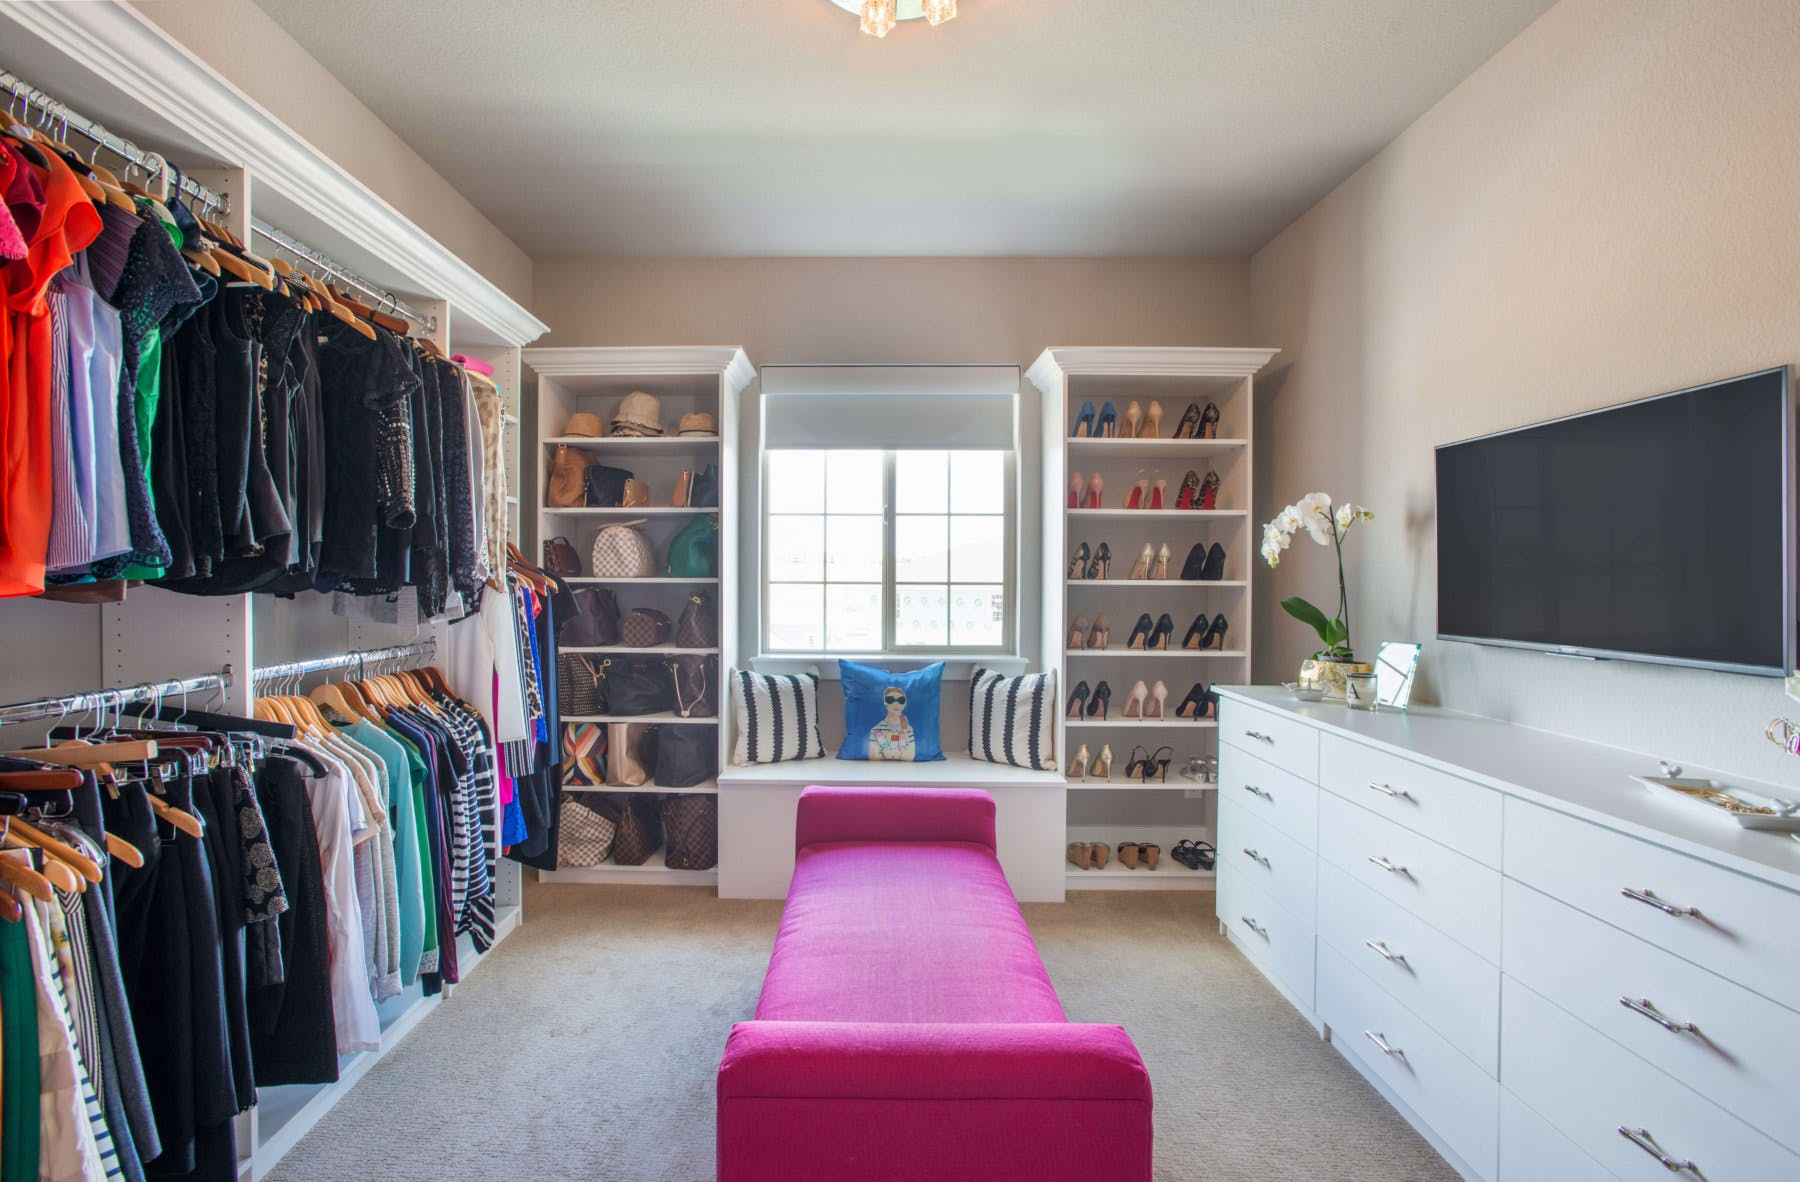 denver visaopanoramica closets in x custom california com design walk closet by